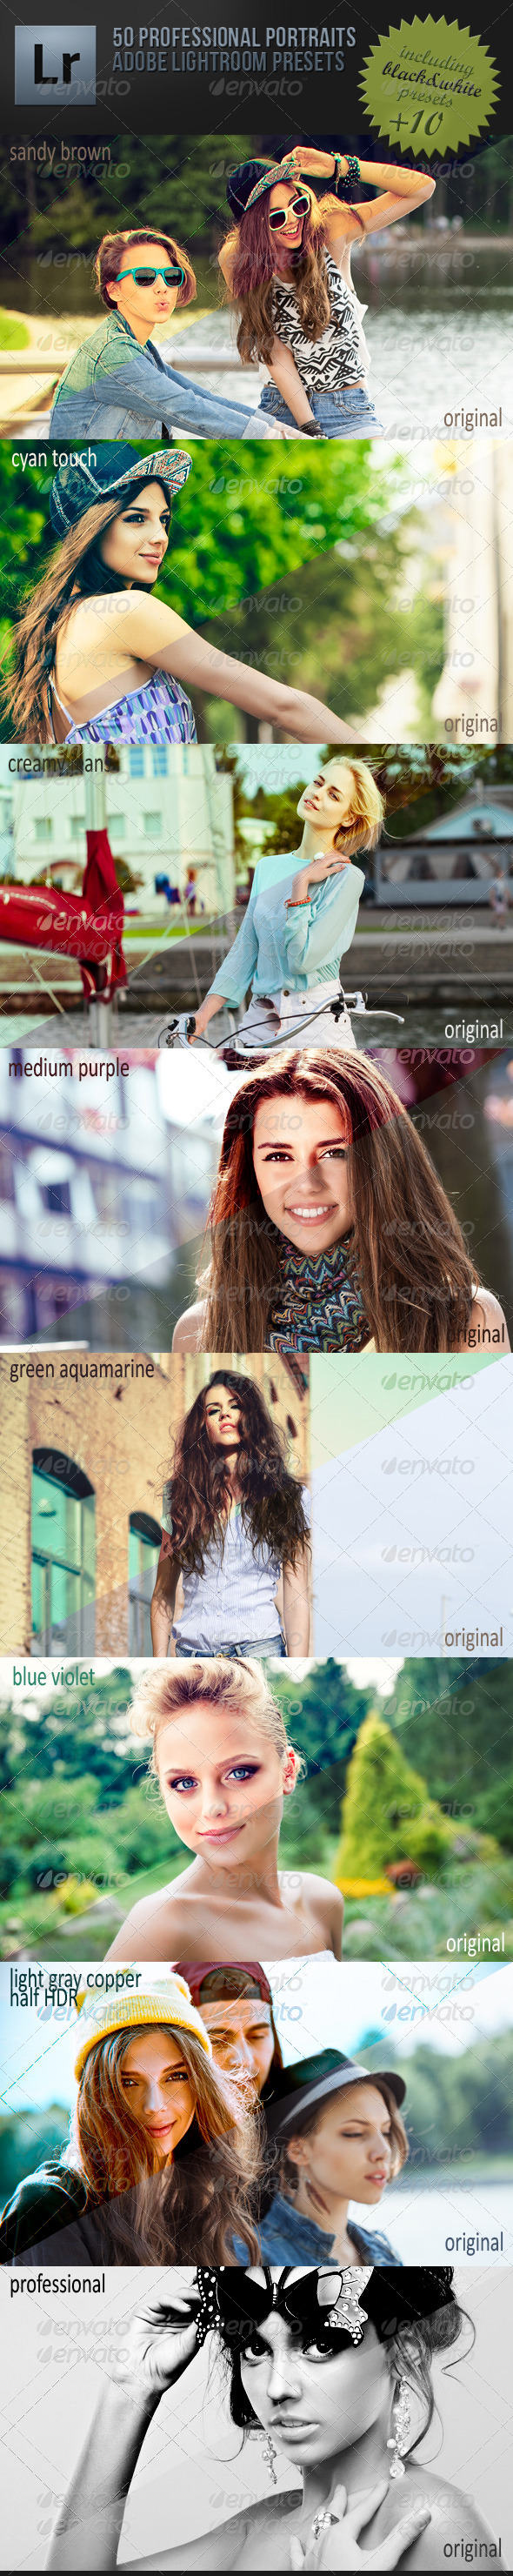 GraphicRiver 50 Professional Portraits Lightroom Presets 5222210